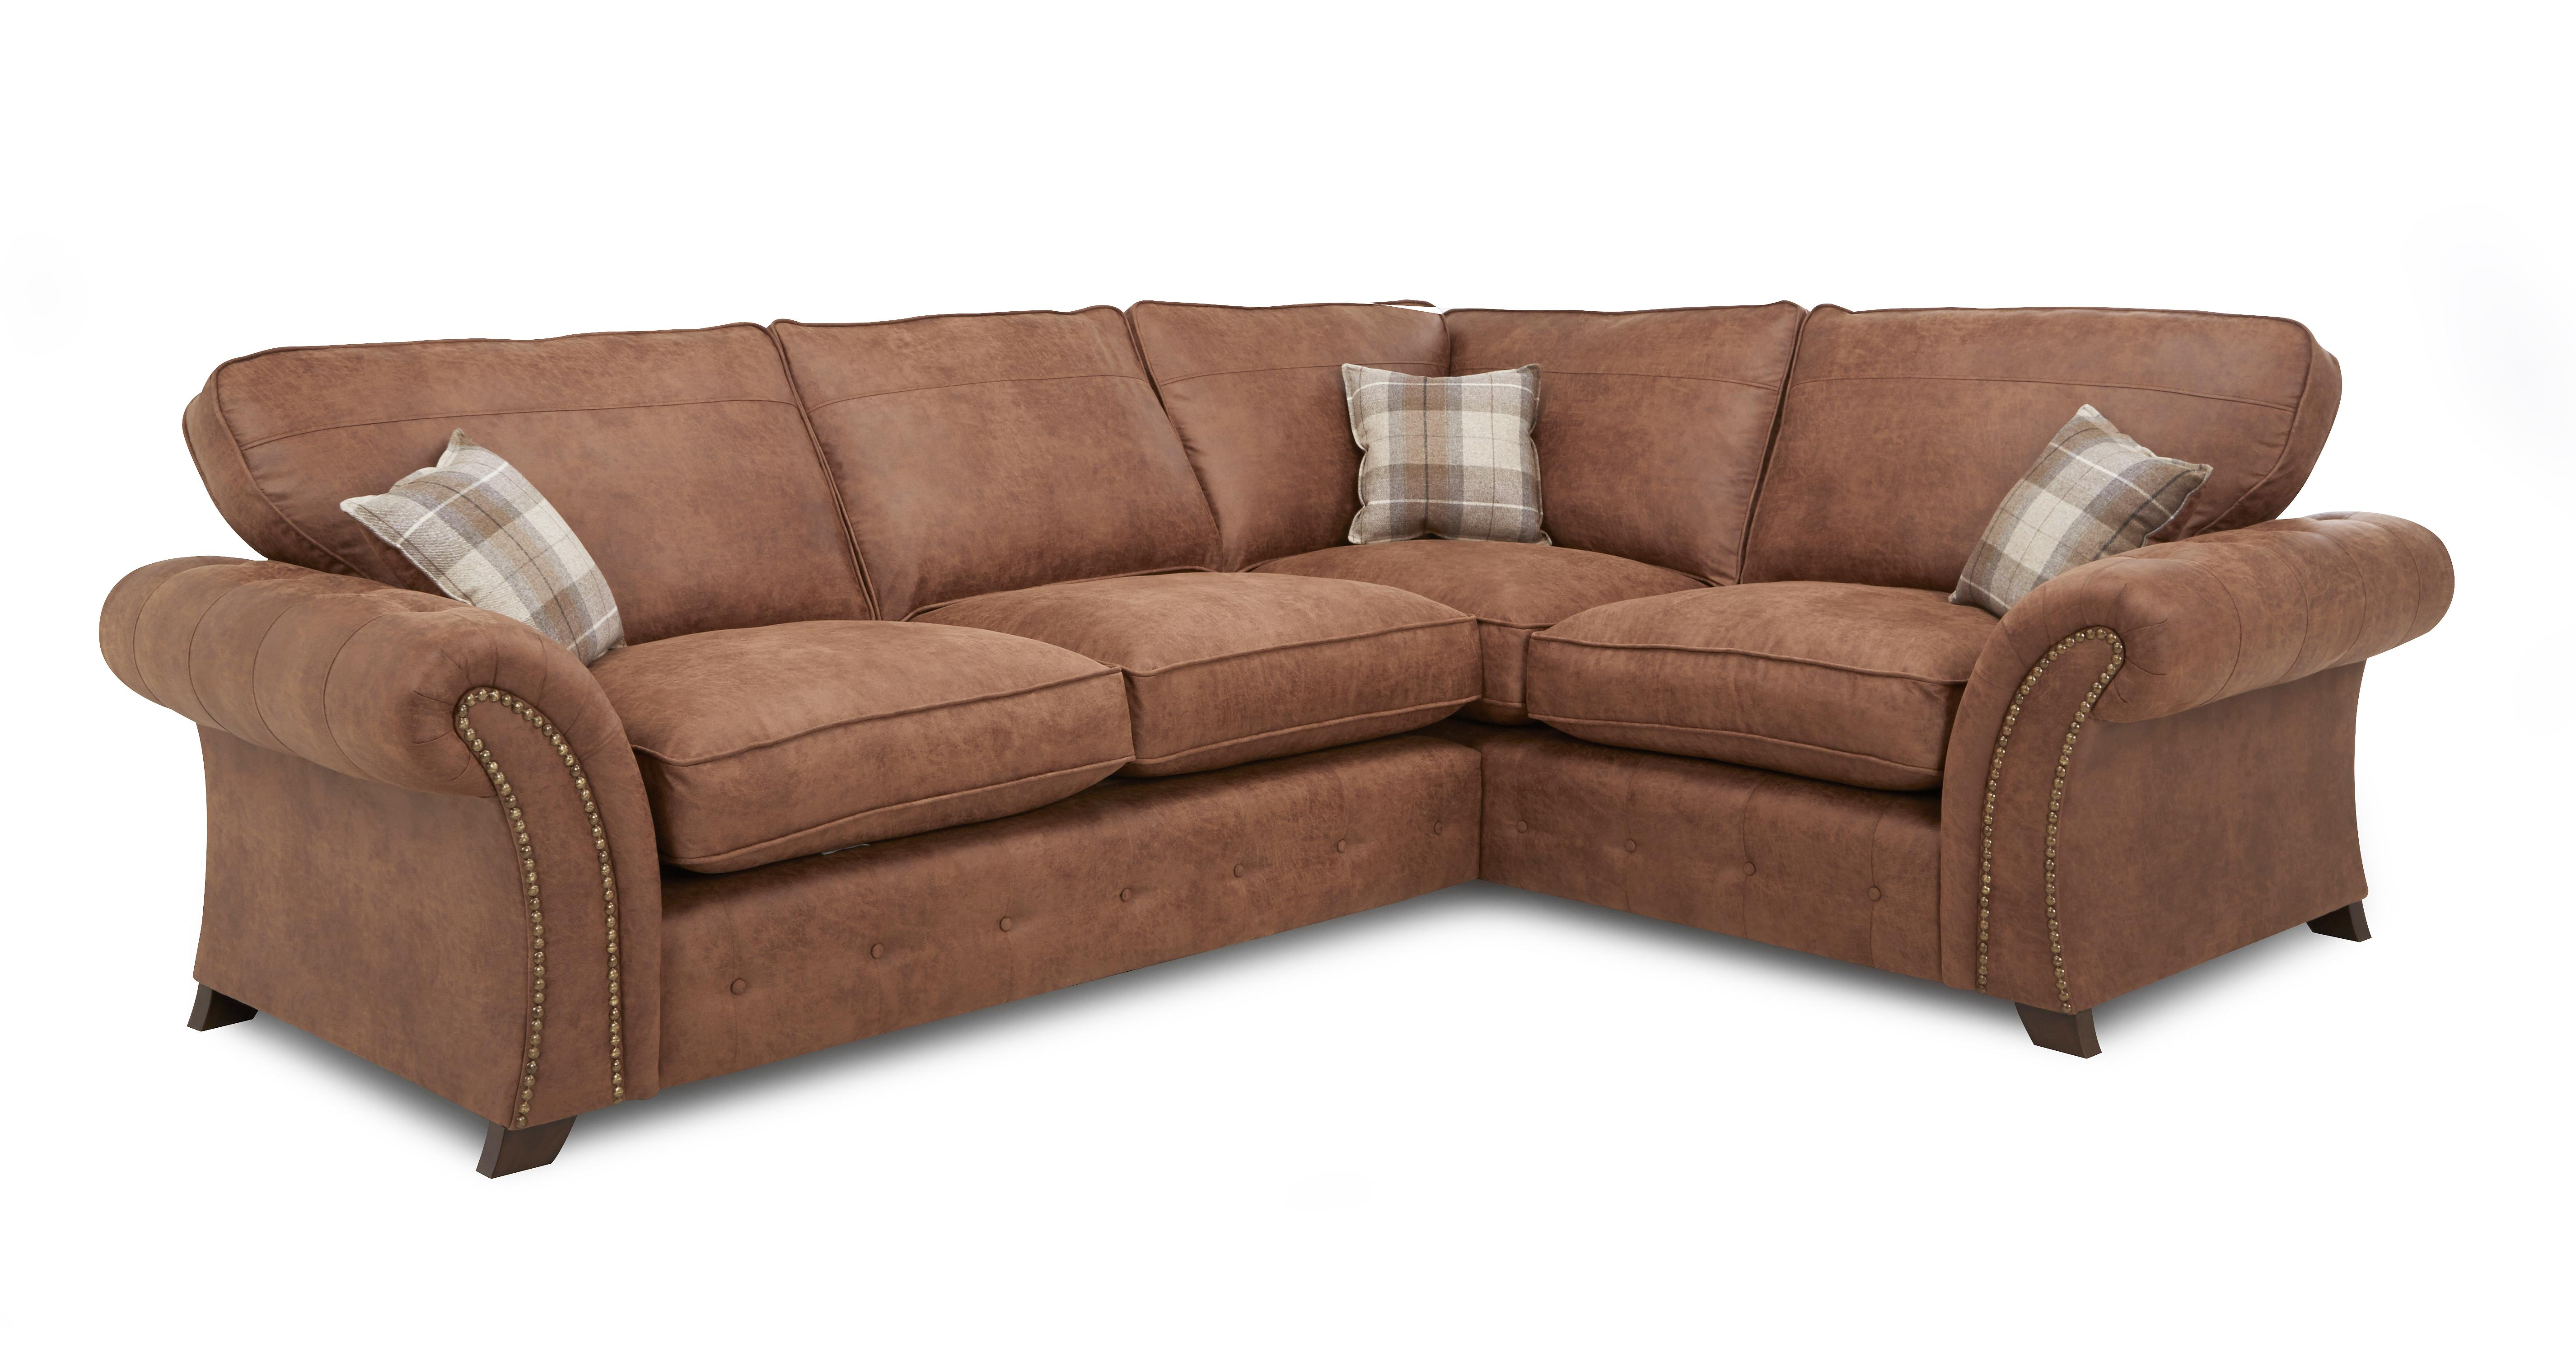 Dfs corner sofa on finance home for Sofa 0 finance